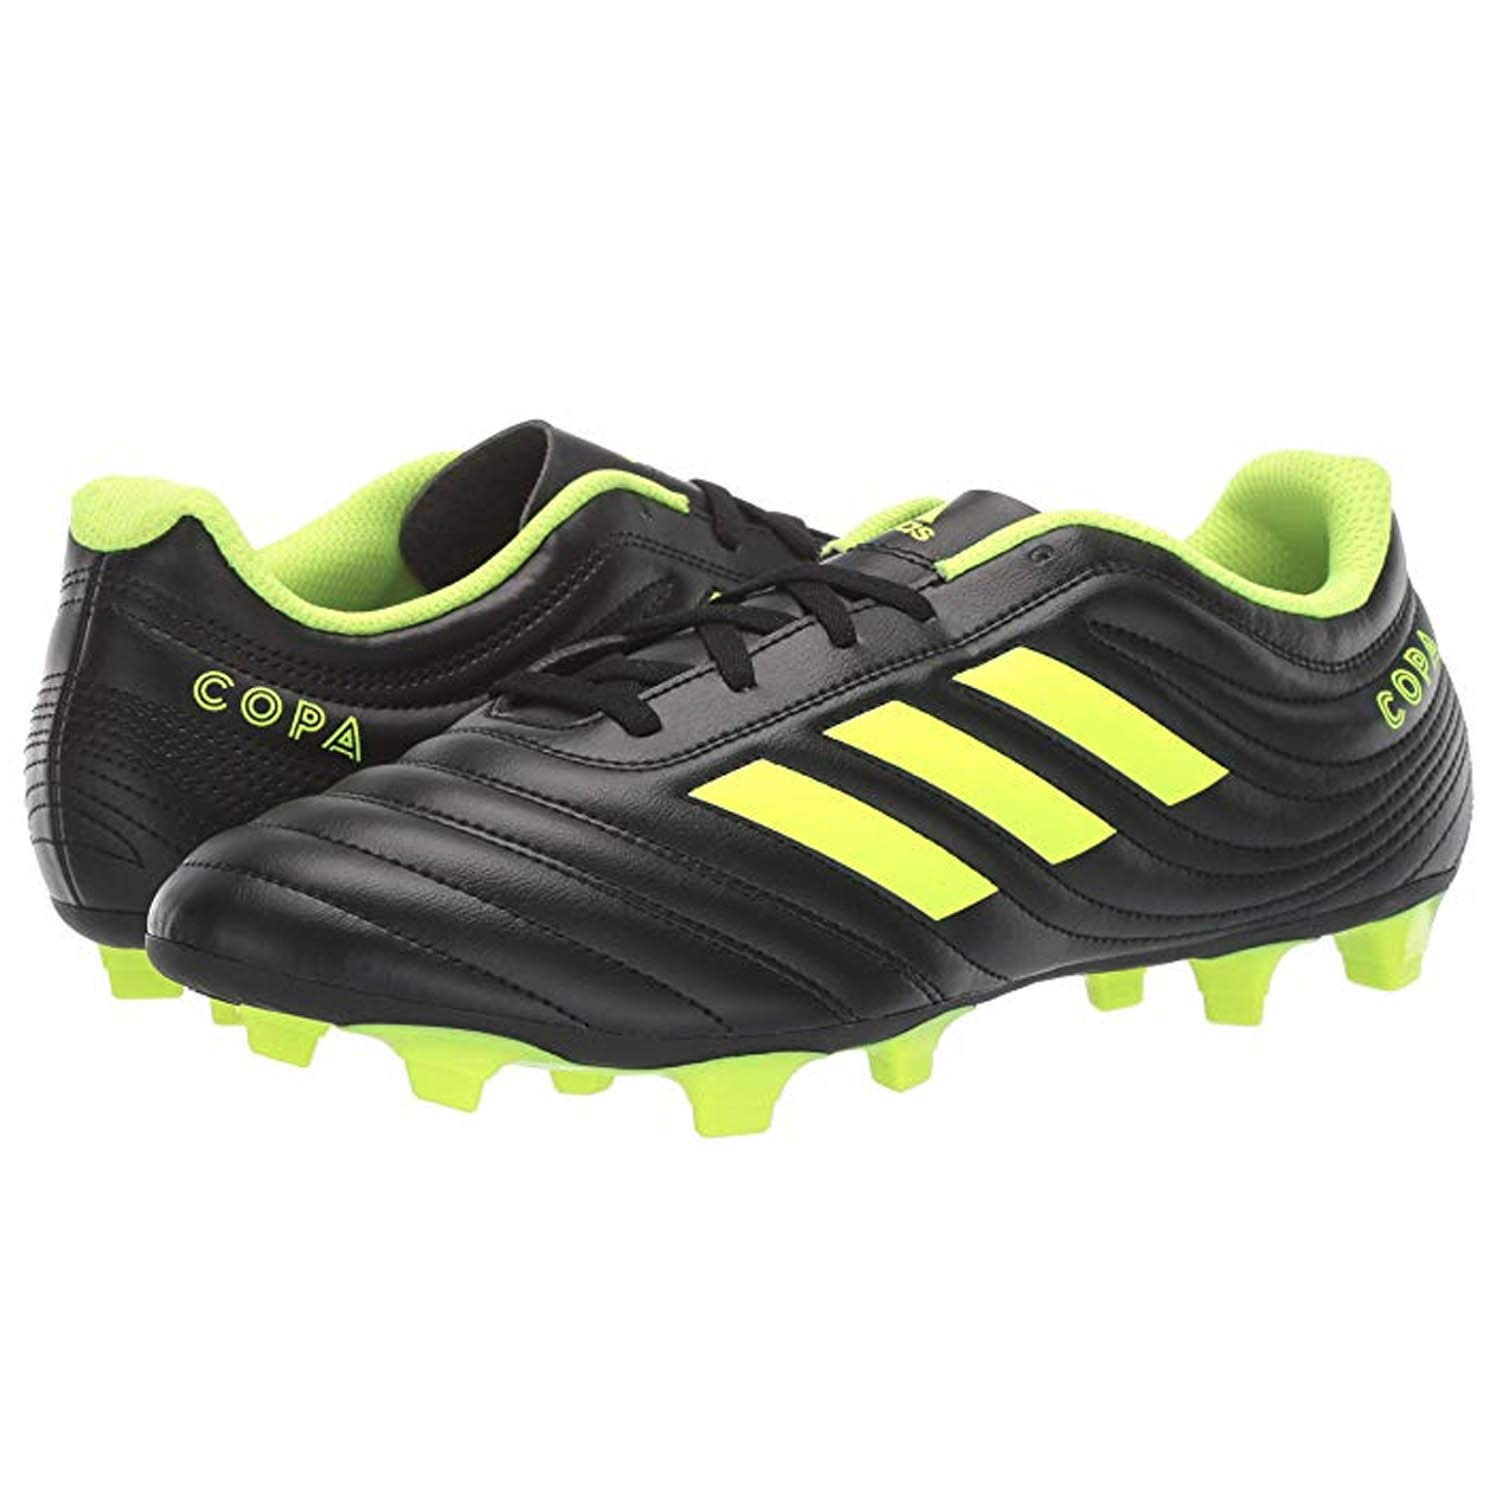 adidas Men's Copa 19.4 Firm Ground, Black/Silver Metallic/Solar Yellow, 8 M US by adidas